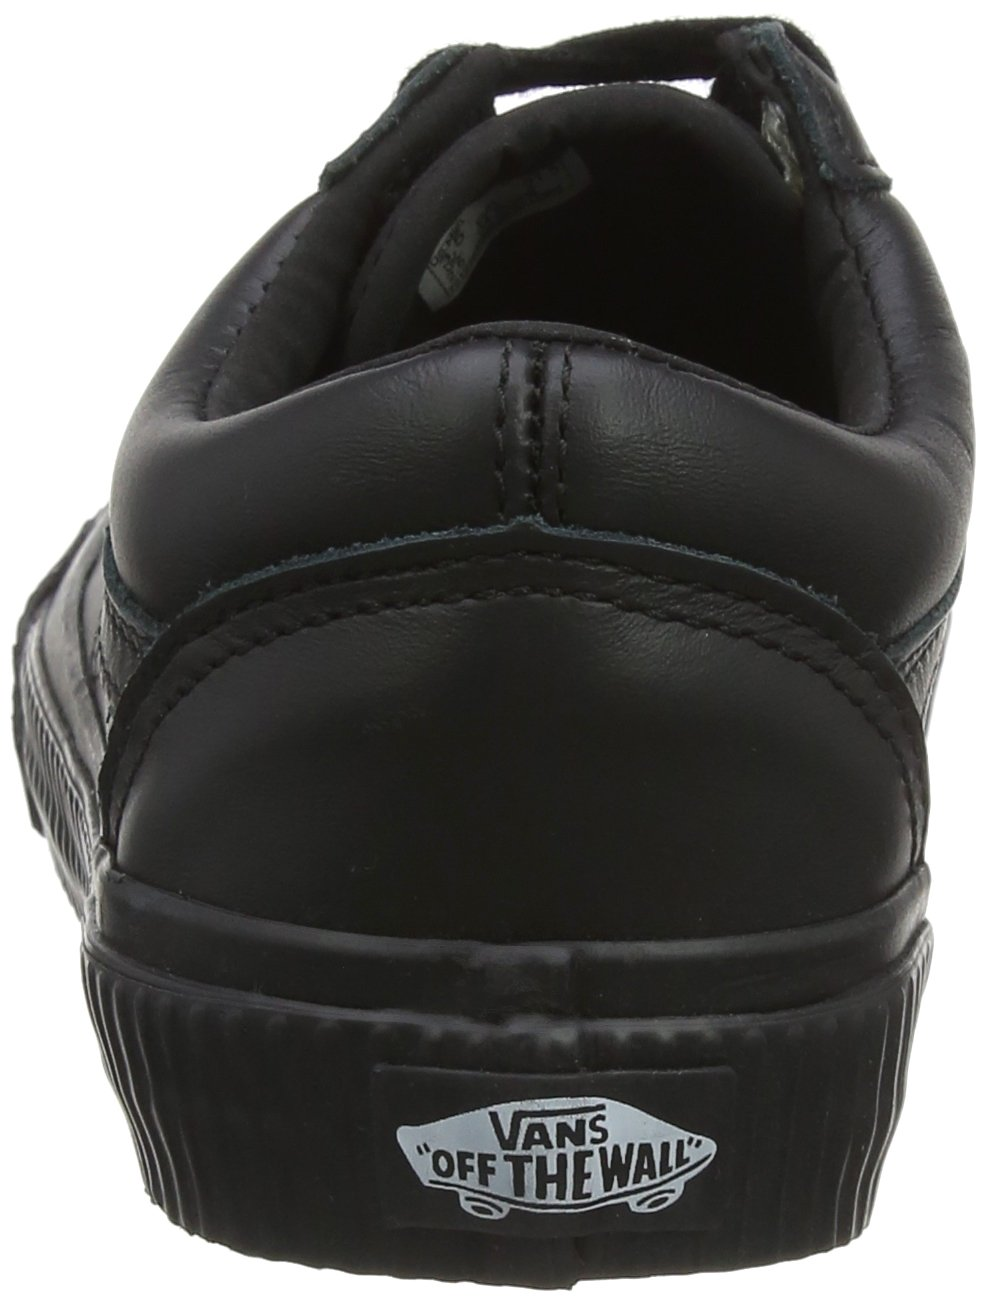 Vans Unisex Old Skool Classic Skate US|Black Shoes B071YDMK2R 6 D(M) US|Black Skate d38f0c